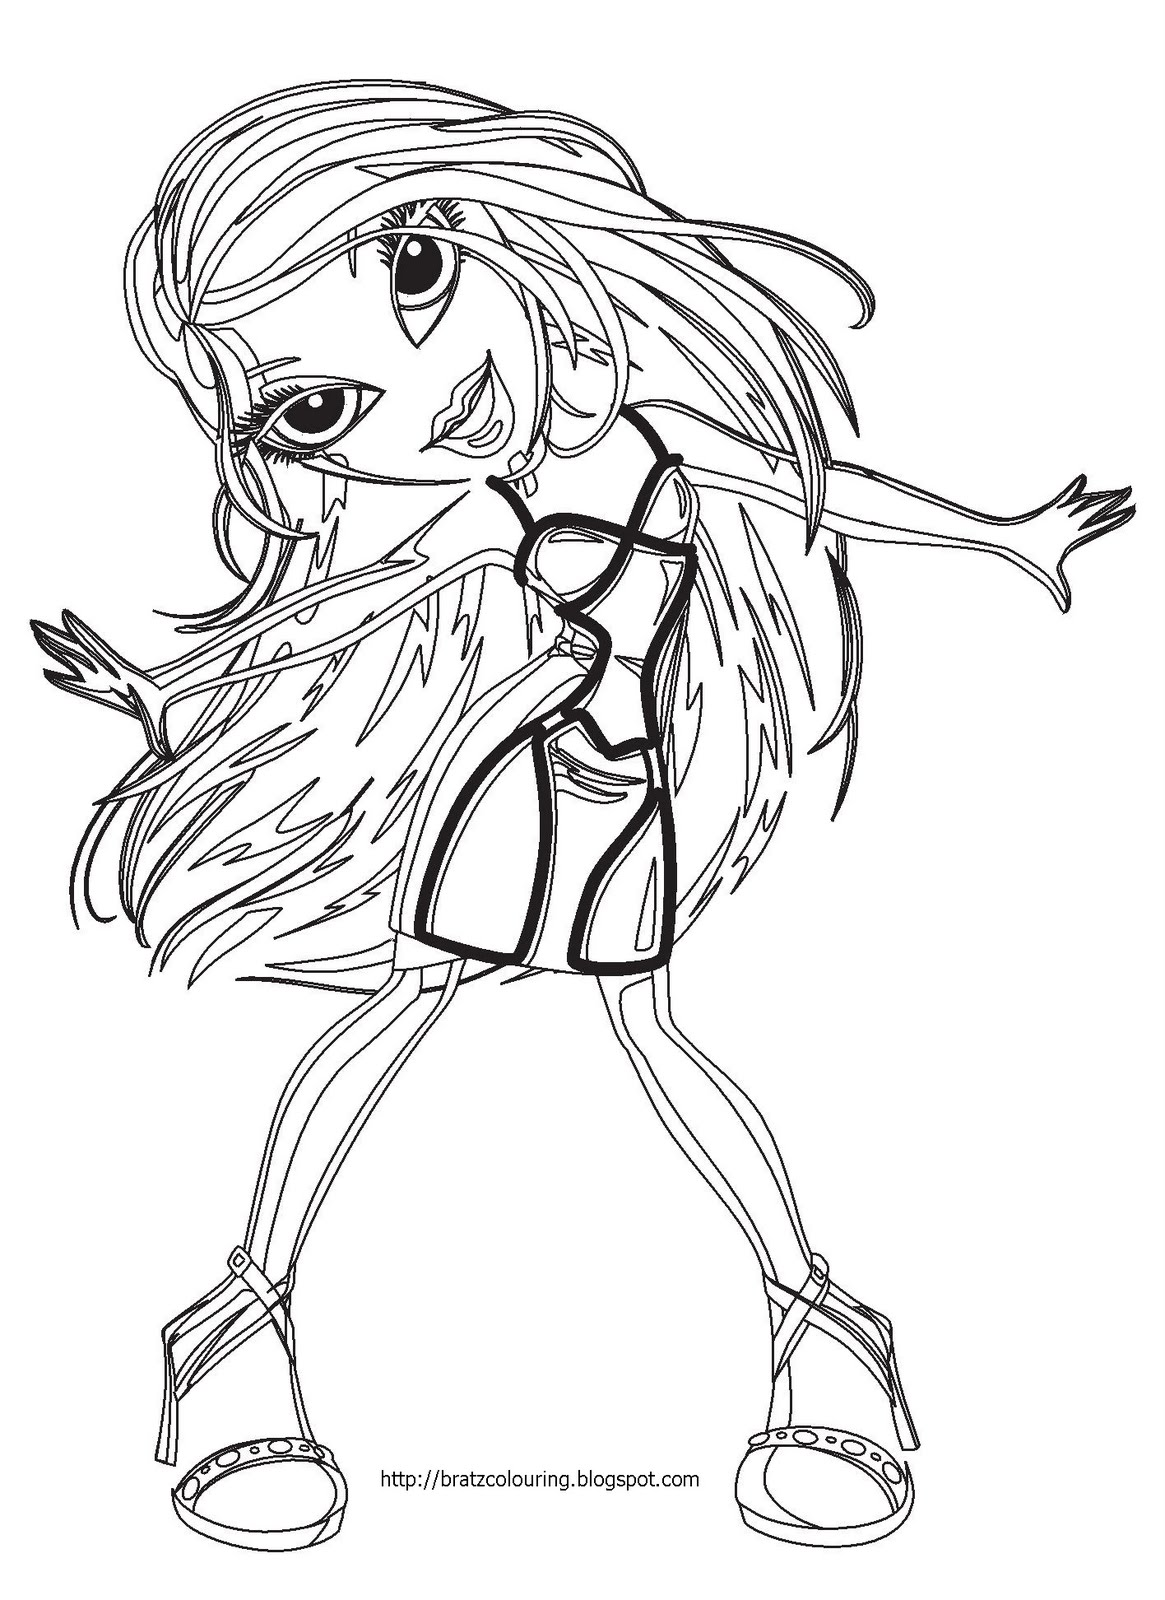 free bratz printable coloring pages - photo#31